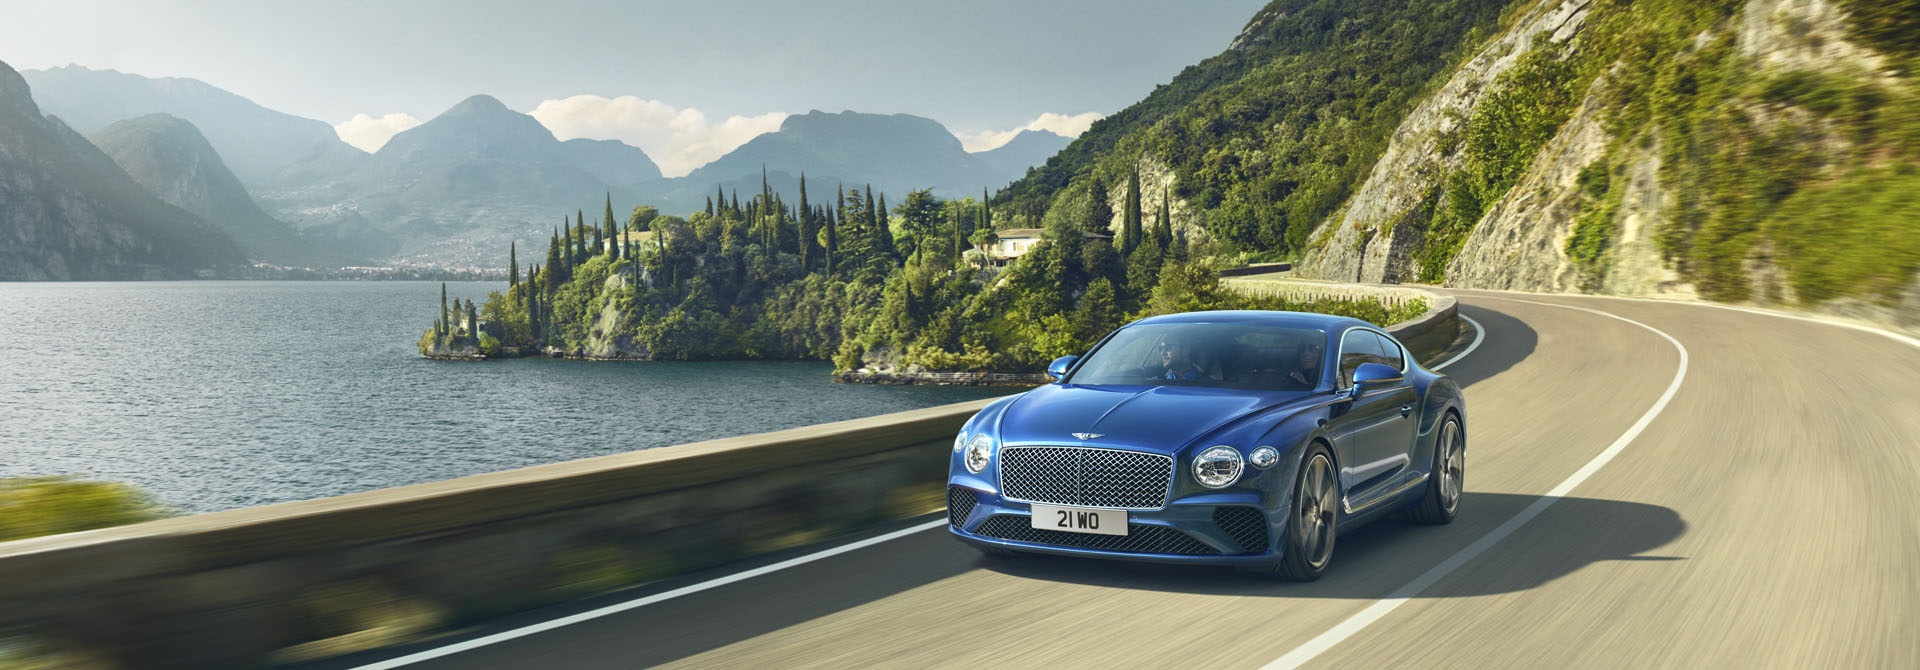 New Bentley Continental GT 2017 in Sequin Blue colour driving by an Italian lake in the sunshine